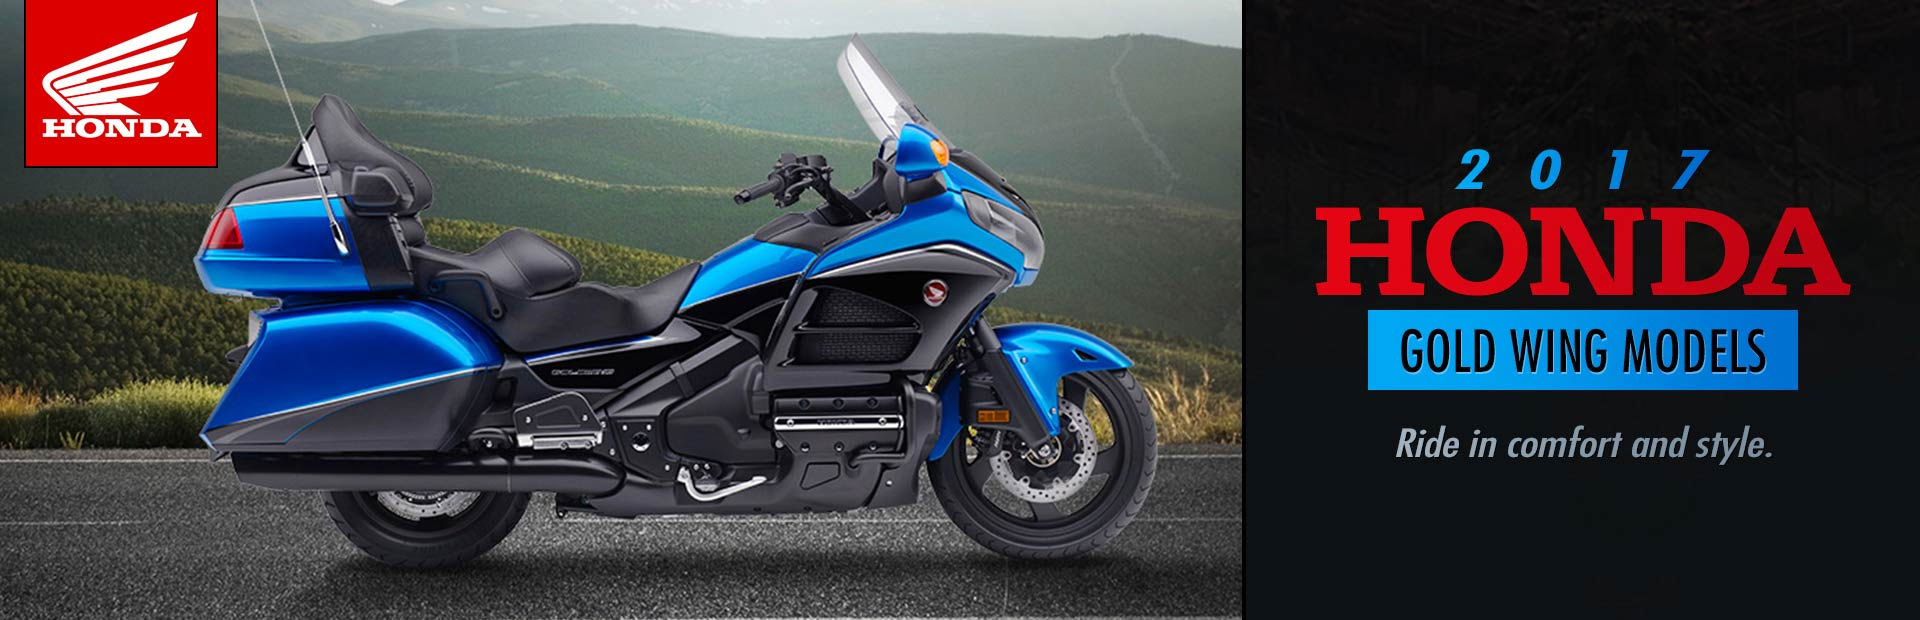 2017 Honda Gold Wing Models: Click here to view the models.